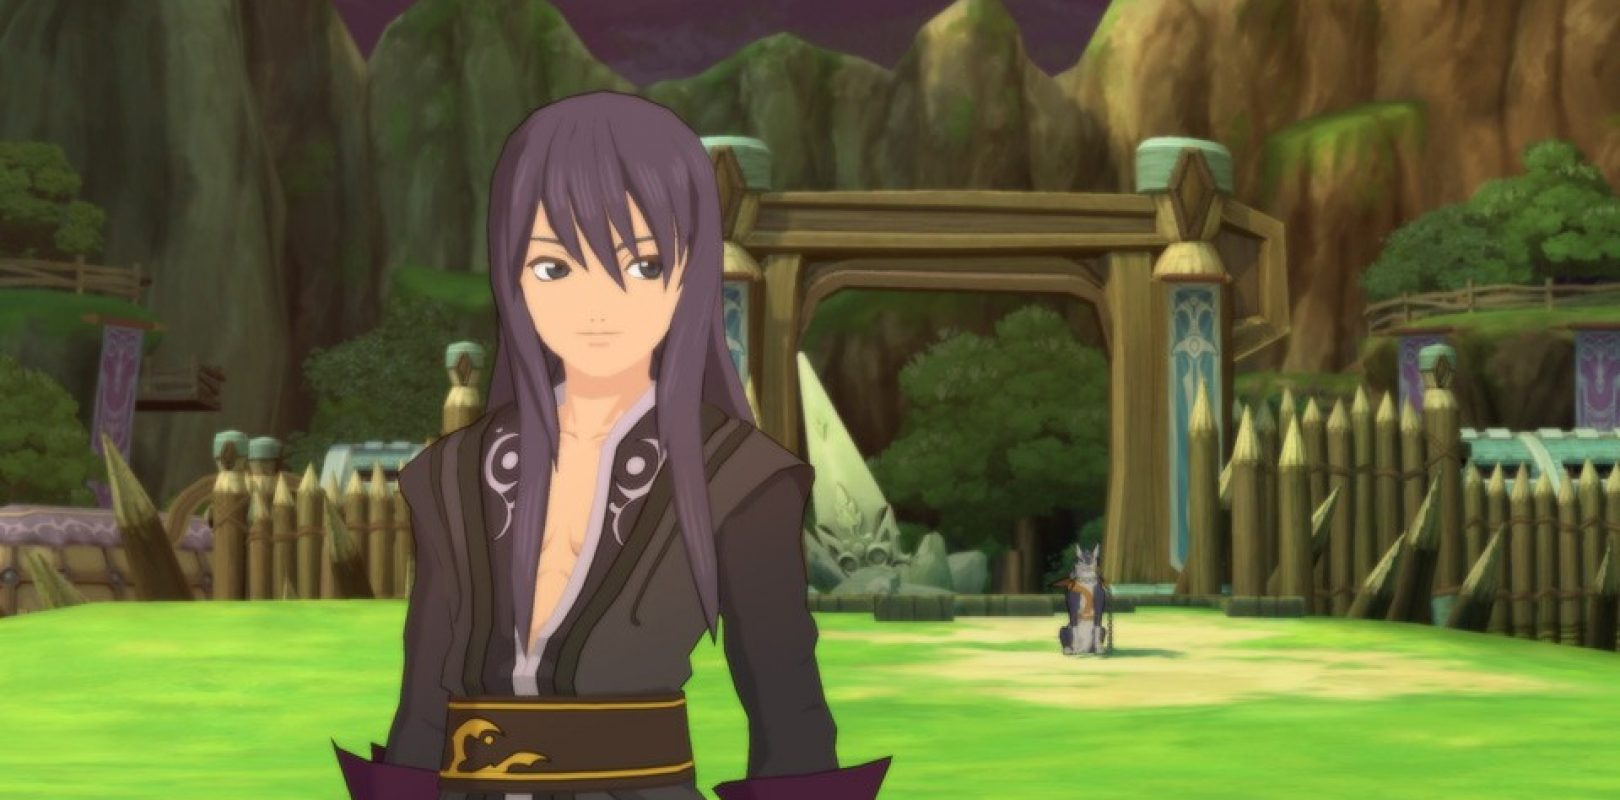 Yuri, the main character of Tales of Vesperia